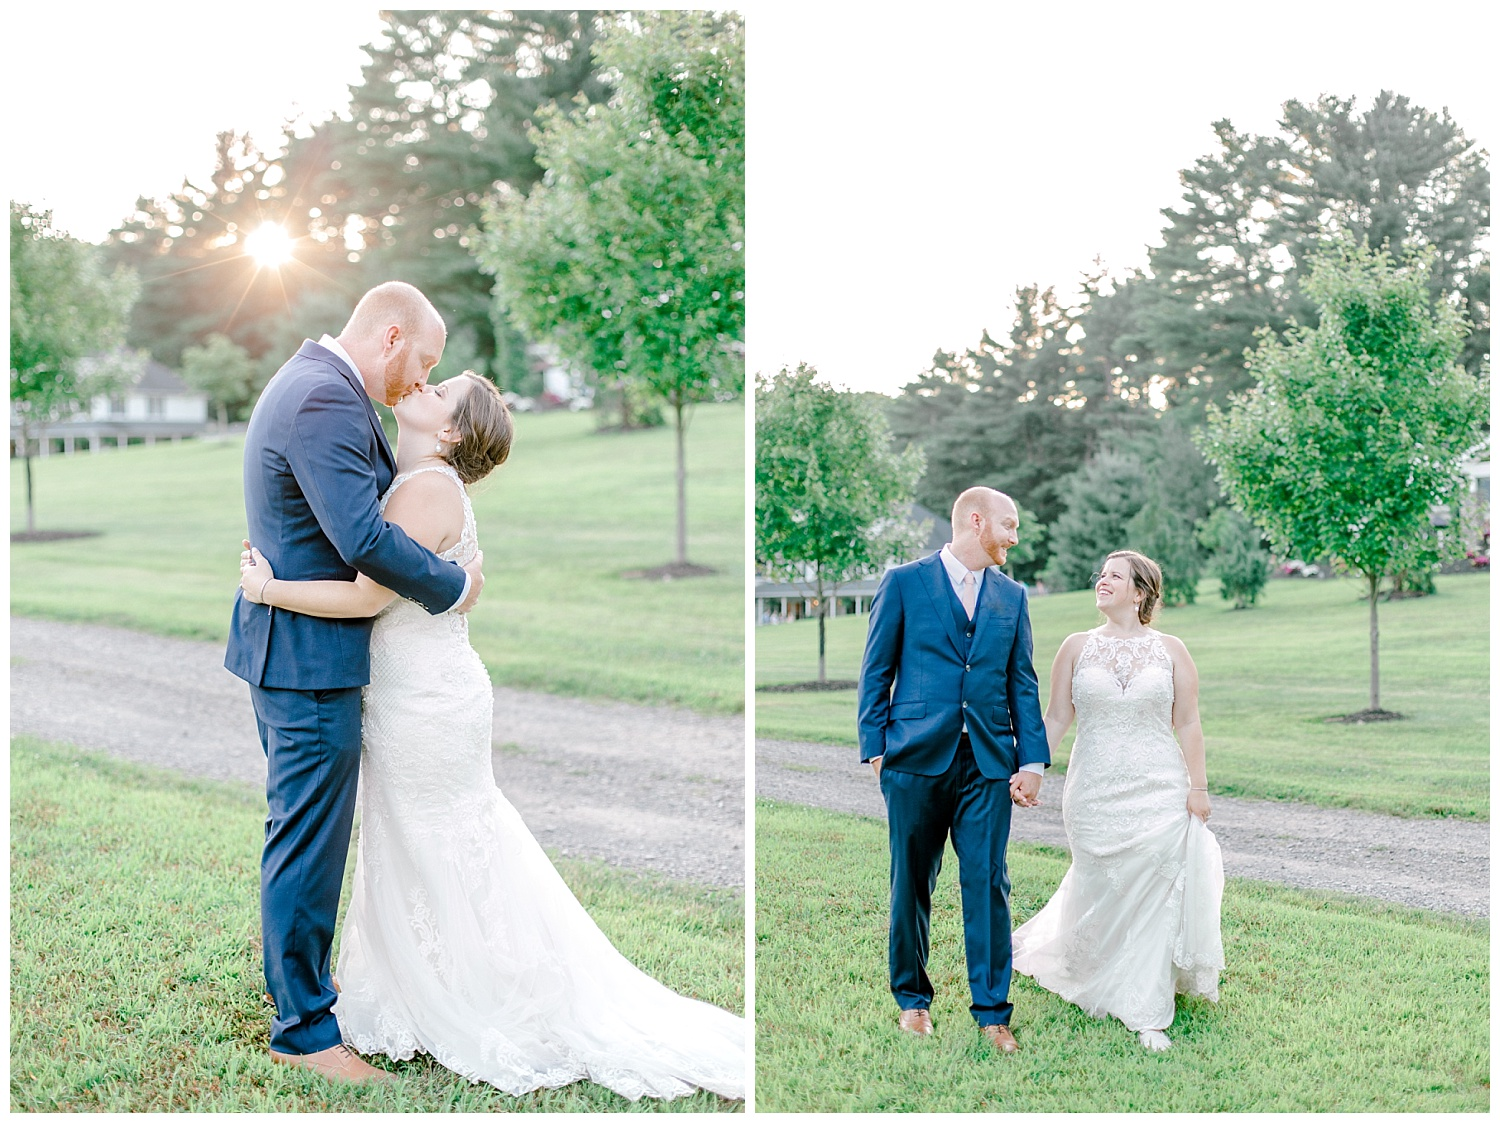 Navy and Blush pink inspired summertime whitewoods wedding in Northeastern Pennsylvania NEPA wapwallopen wedding venue by  PA based wedding and lifestyle photographer Lytle photography_0057.jpg